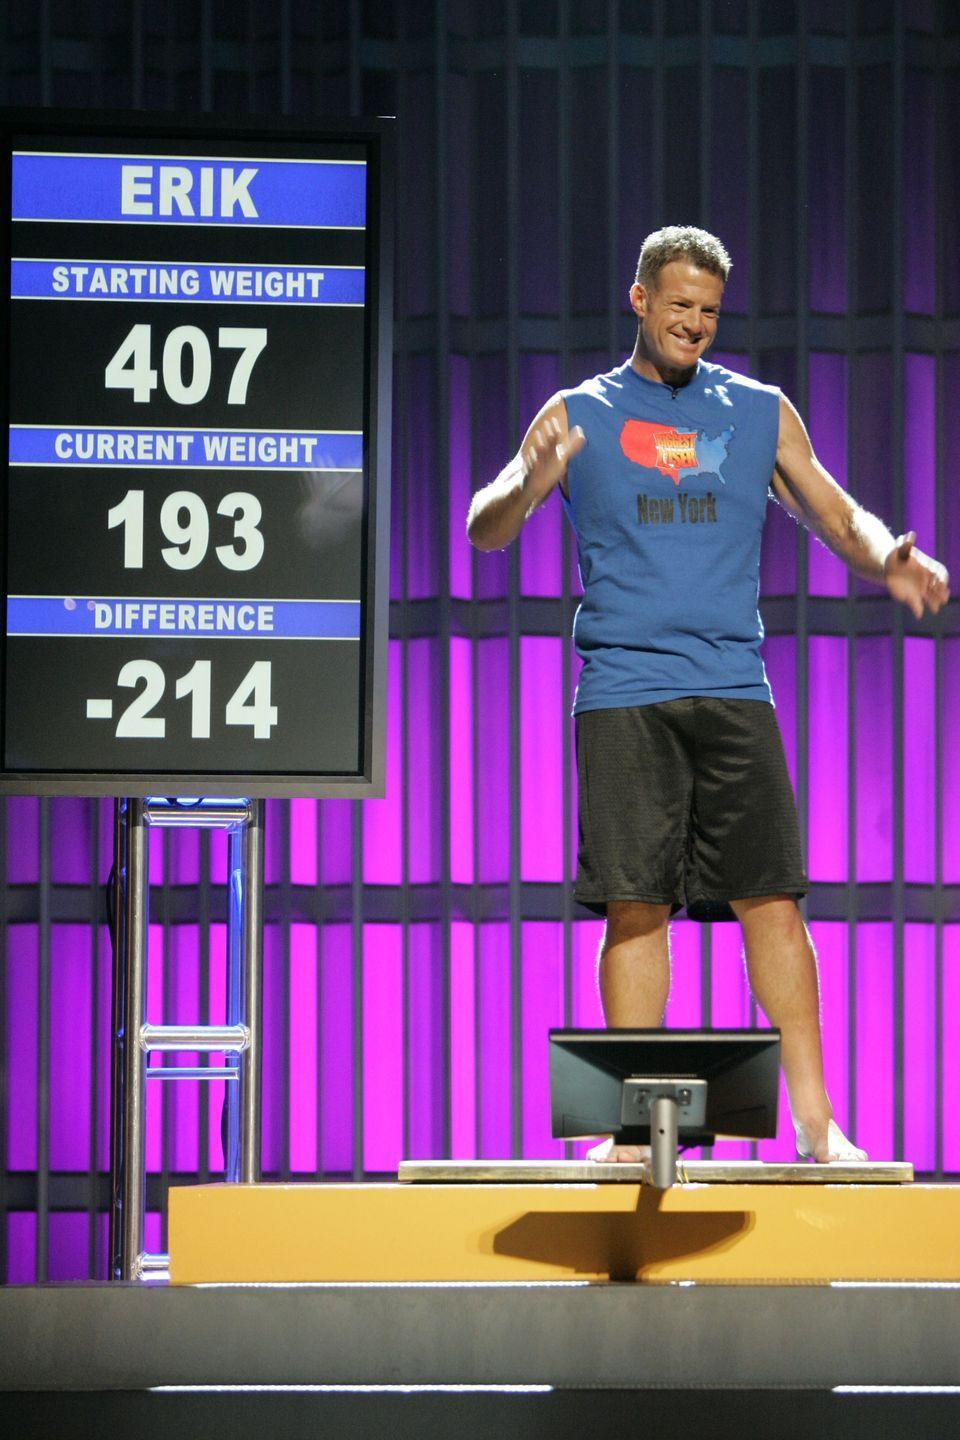 <p>Erik had what may have been one of the most dramatic weight losses on the show. He went from 407 pounds to 193 pounds to win in season 3.</p>